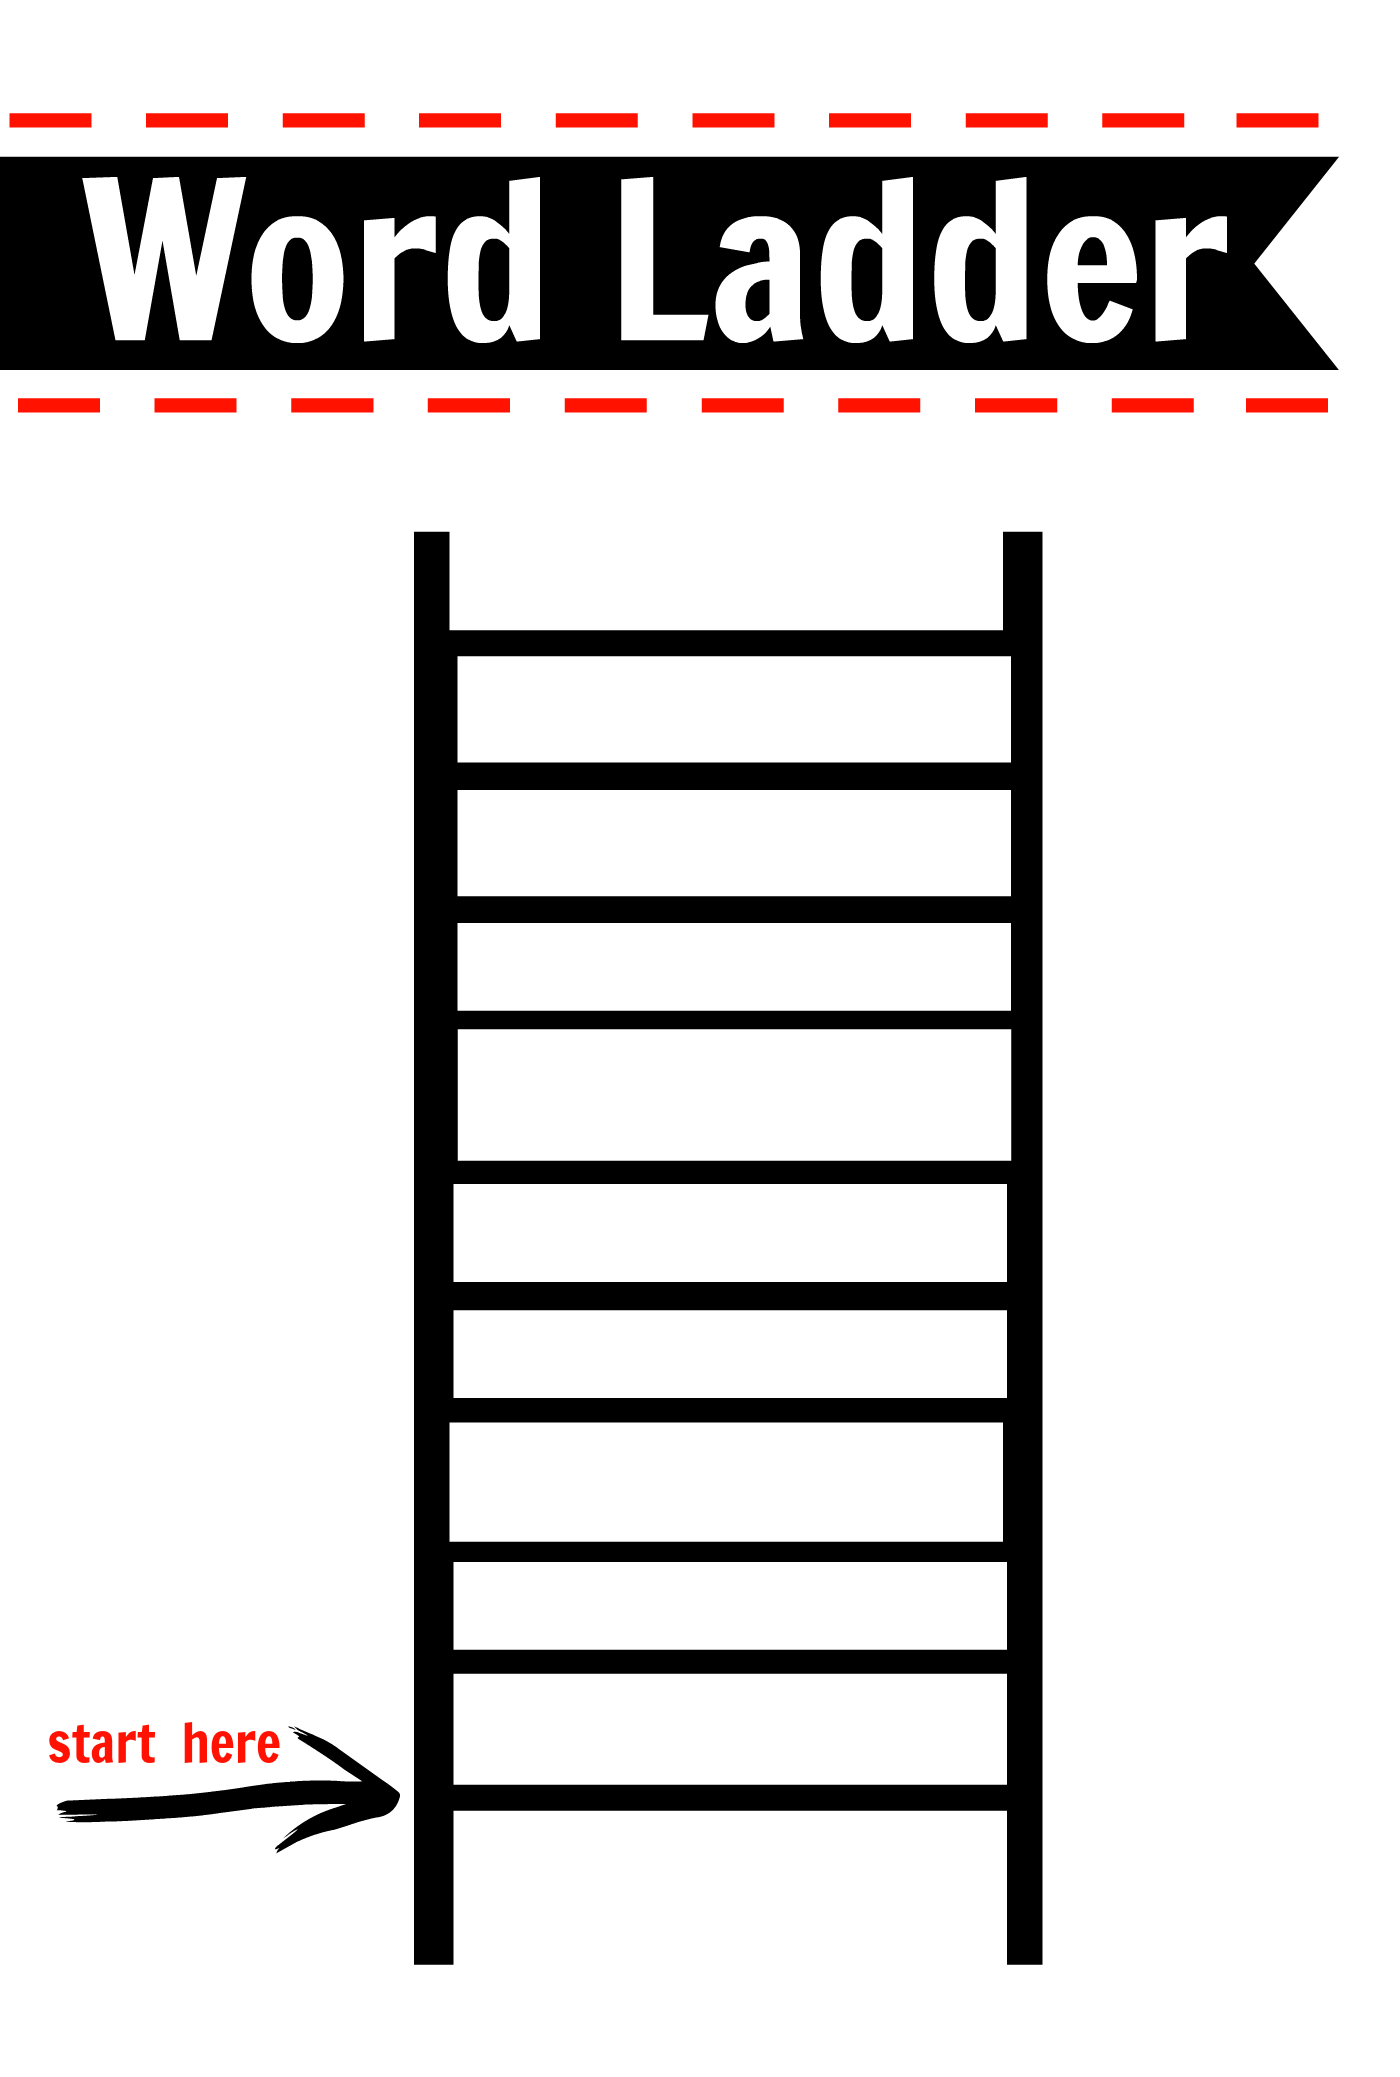 chutesladders non trivial transition matrix ladders resume ladders resume custom illustration